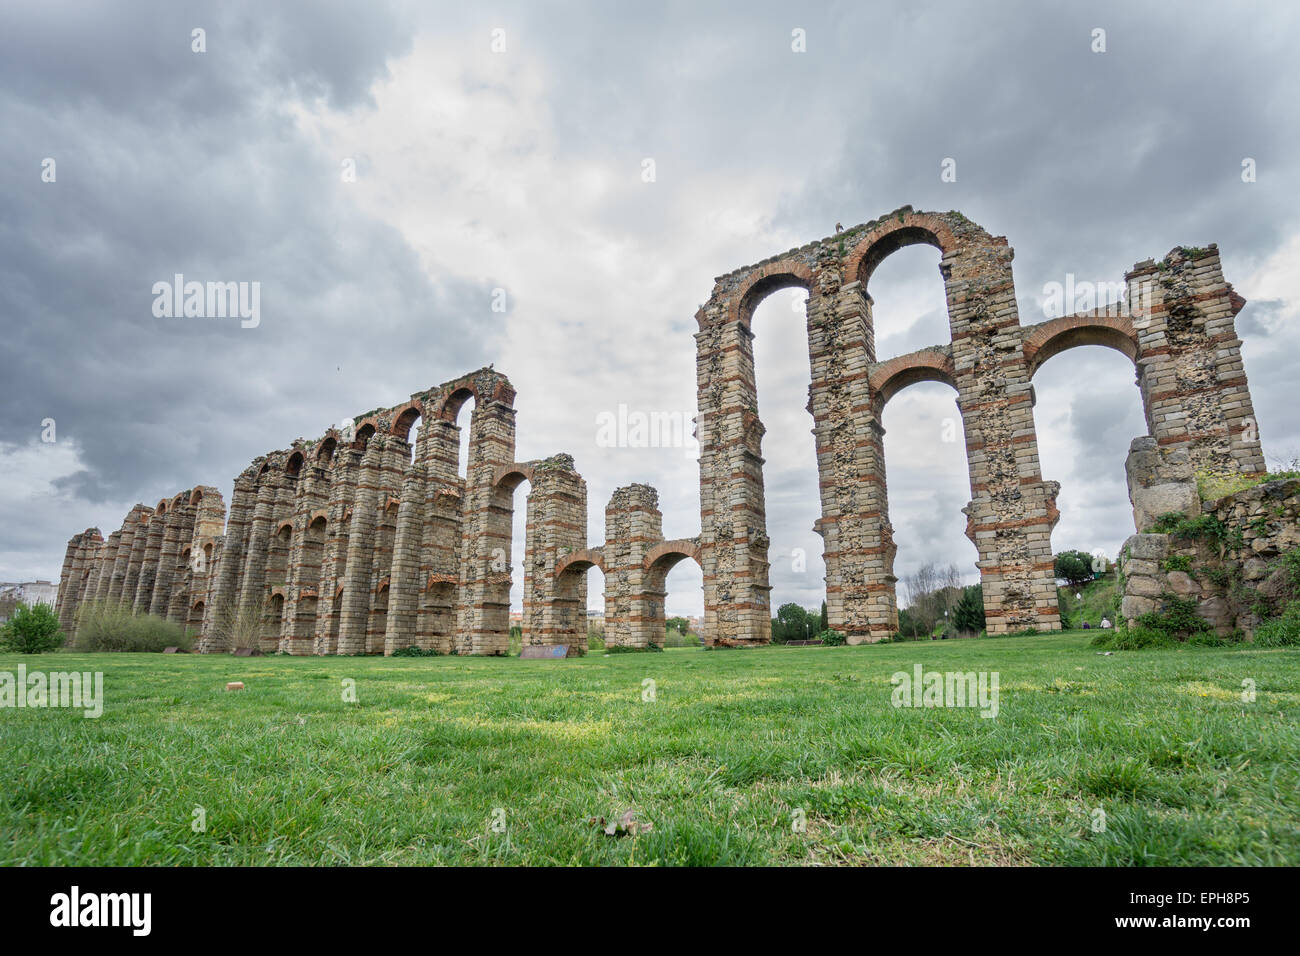 Side view of Aqueduct of the Miracles in Merida Stock Photo